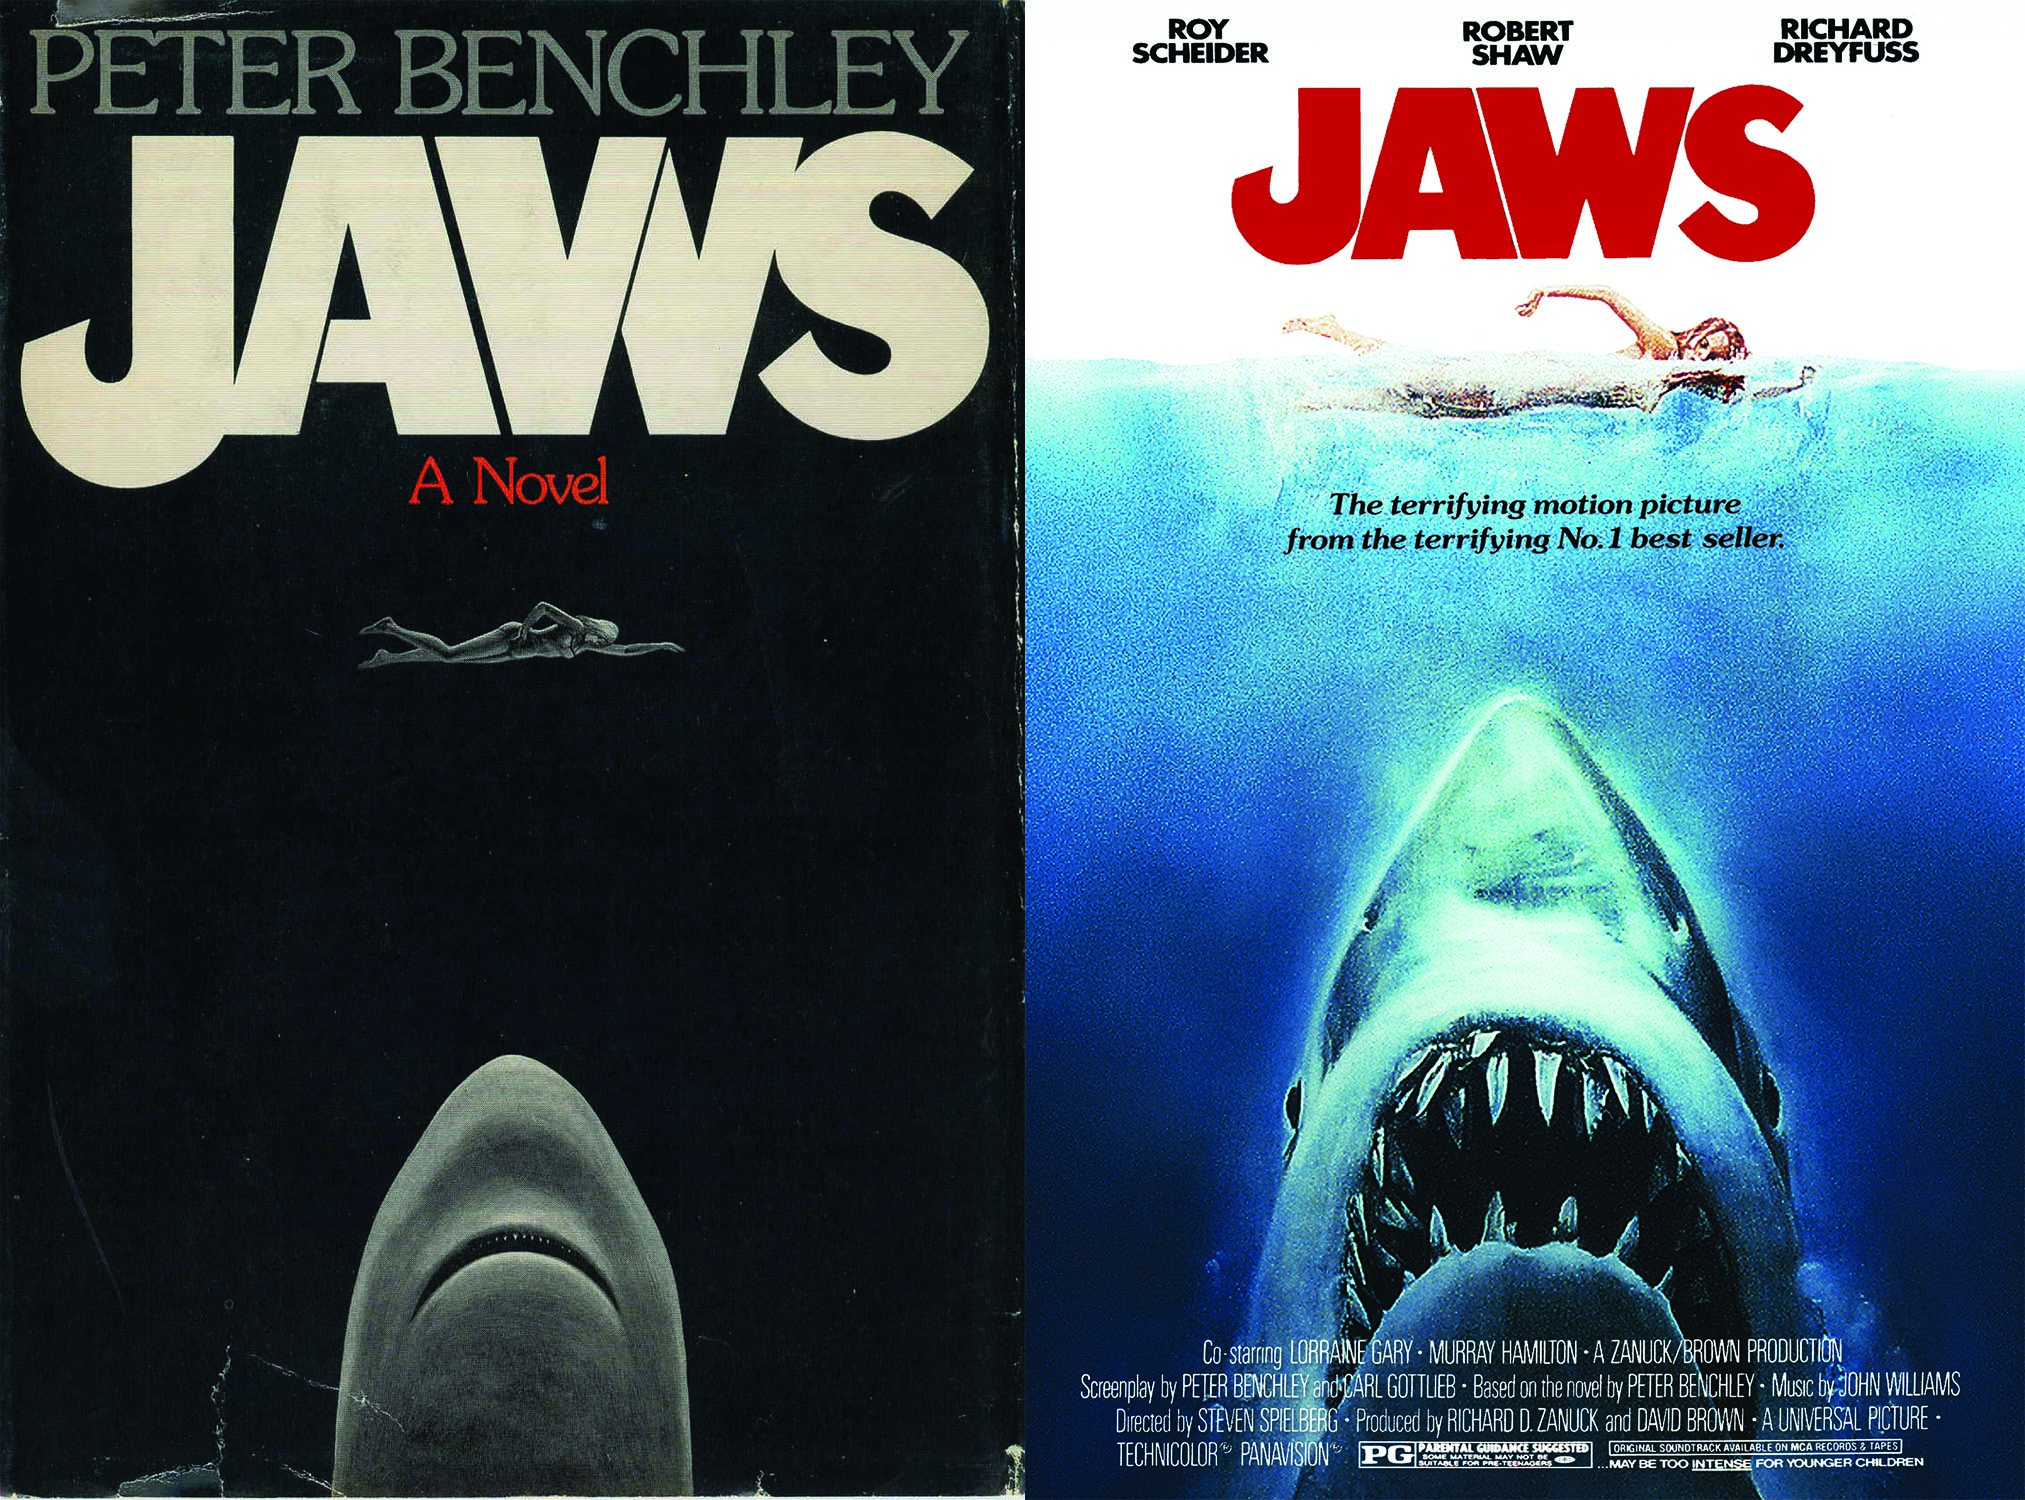 The original book cover (left) with the more recognisable Roger Kastel movie poster (right).